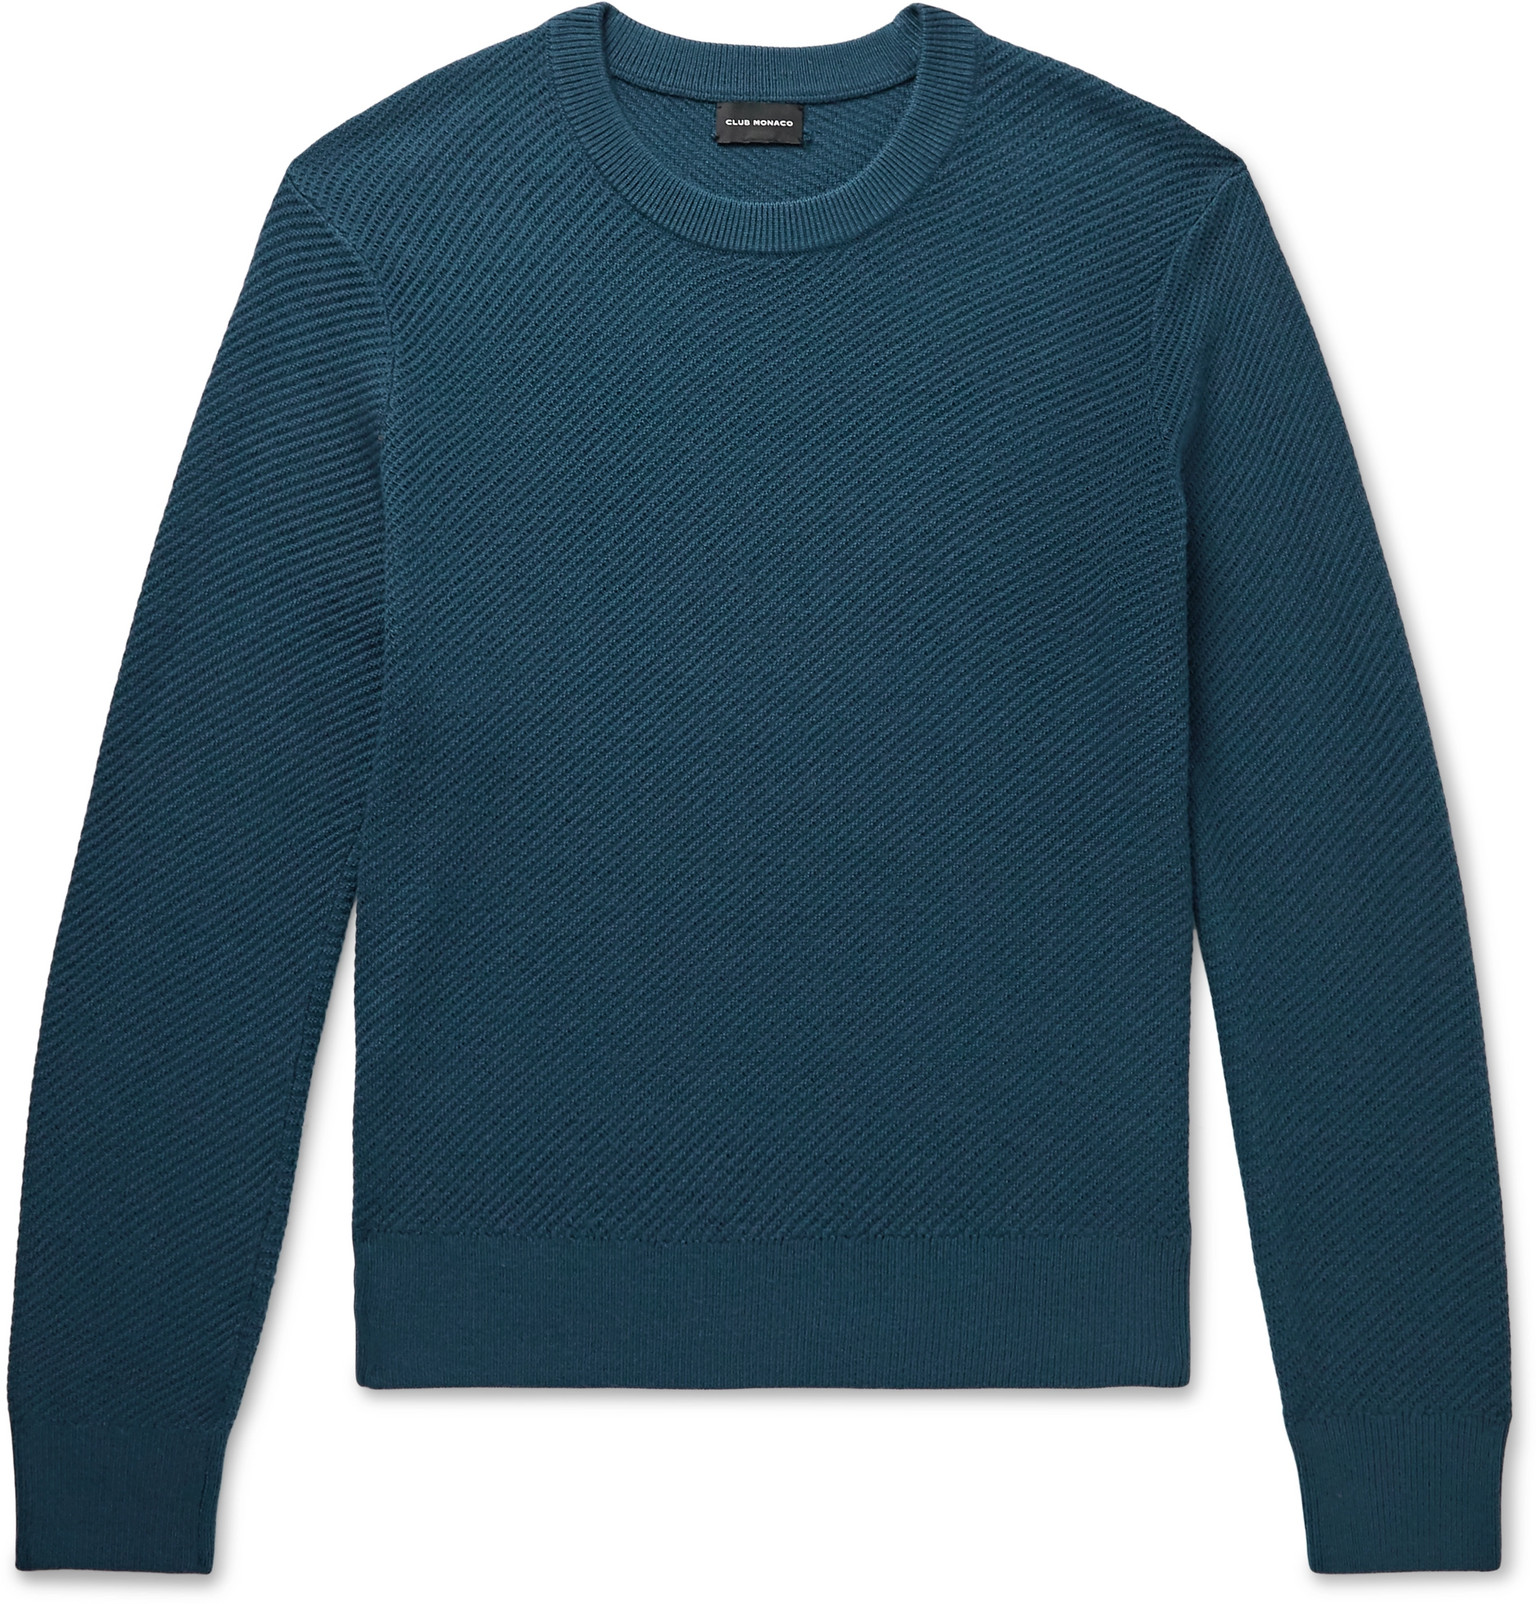 Ribbed Wool Blend Sweater by Club Monaco